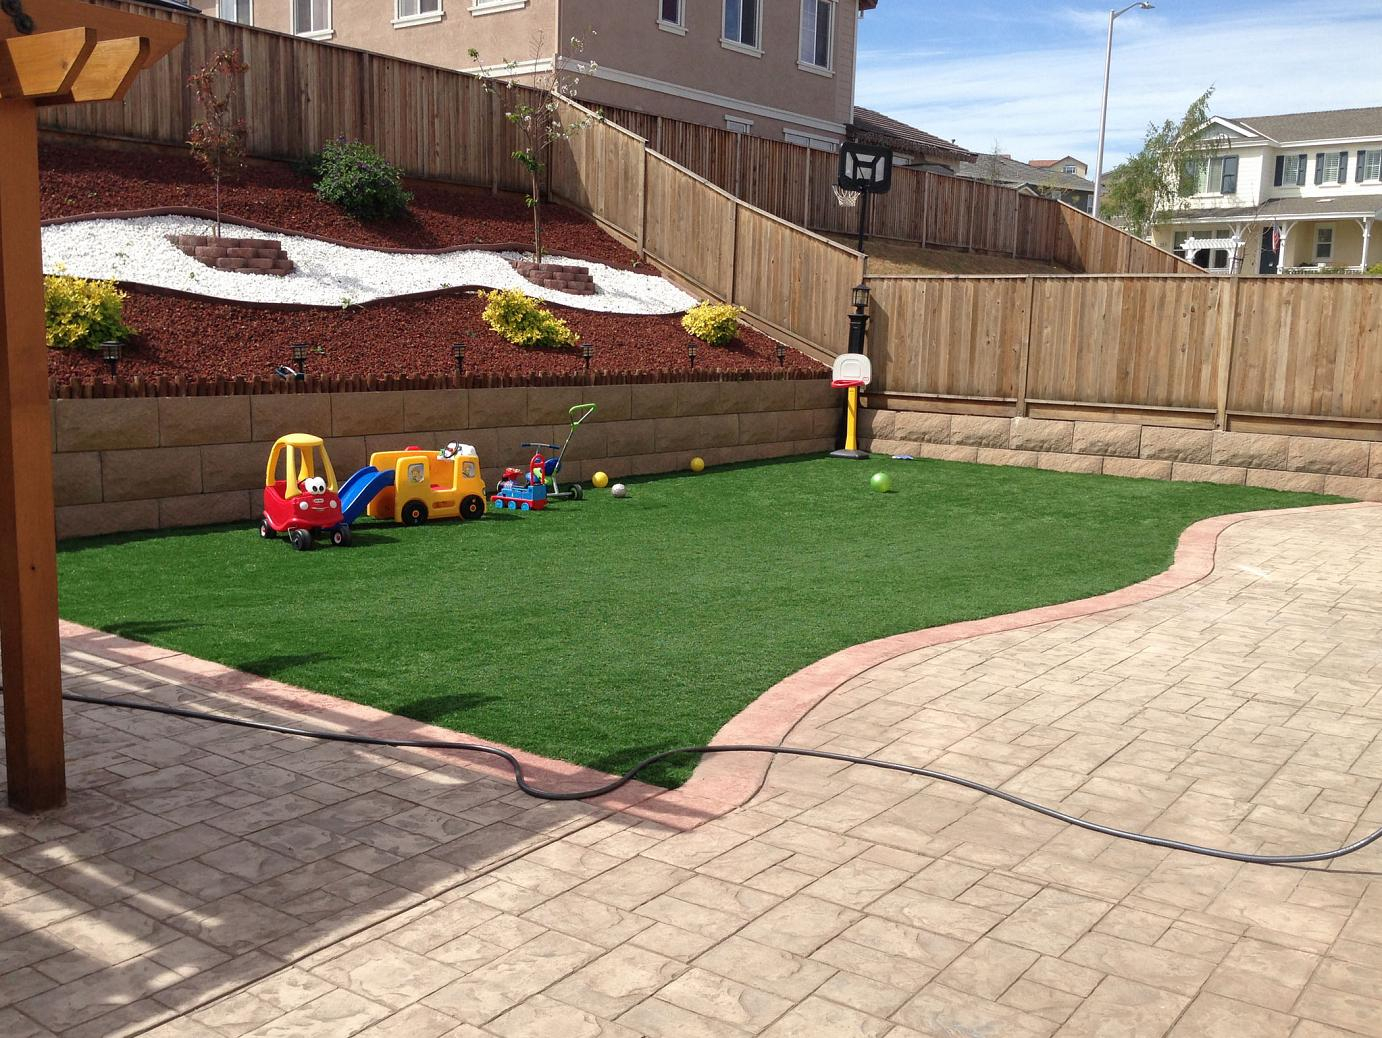 Plastic Grass Pleasanton Texas Playground Backyard Ideas throughout Backyard Ideas Texas